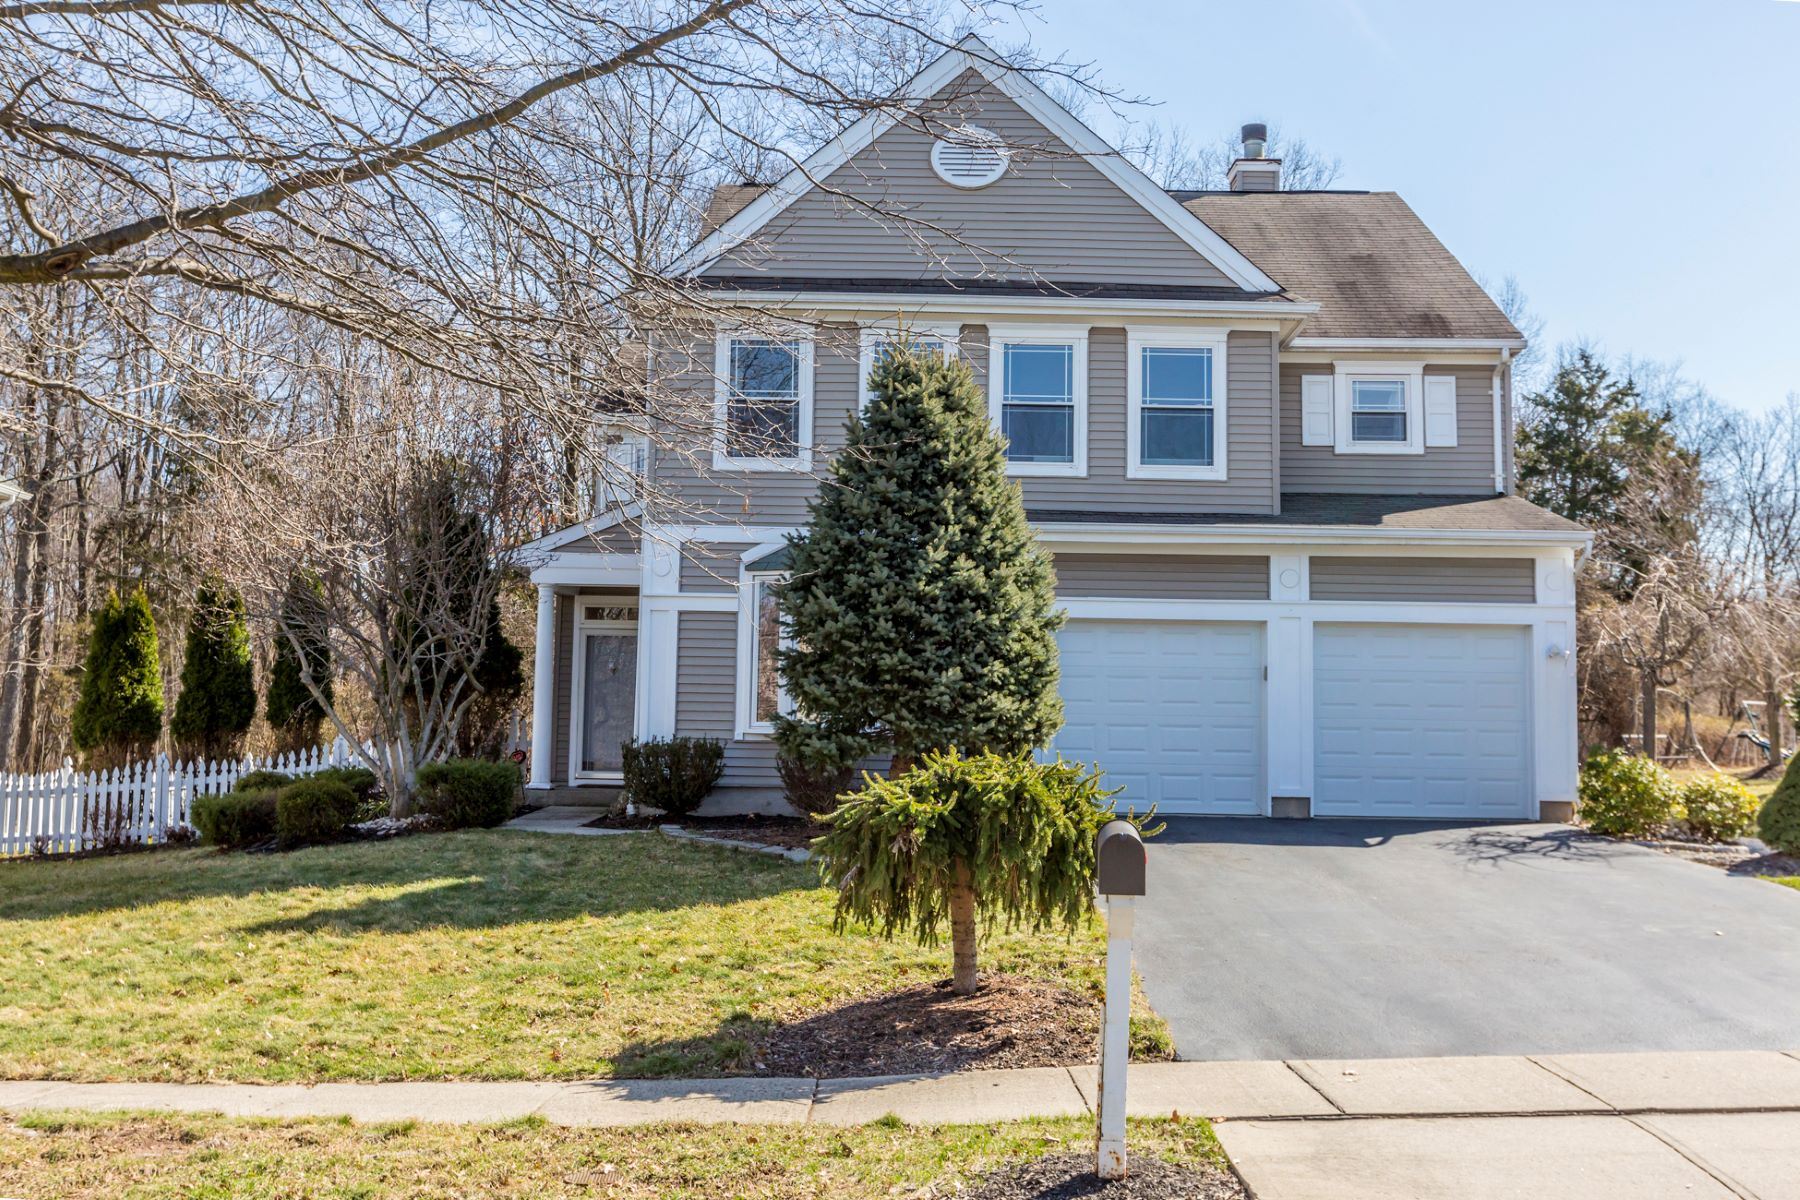 Single Family Home for Sale at Backed by Leafy Privacy in WoodsEdge 41 Rutgers Lane, Princeton, New Jersey 08540 United States